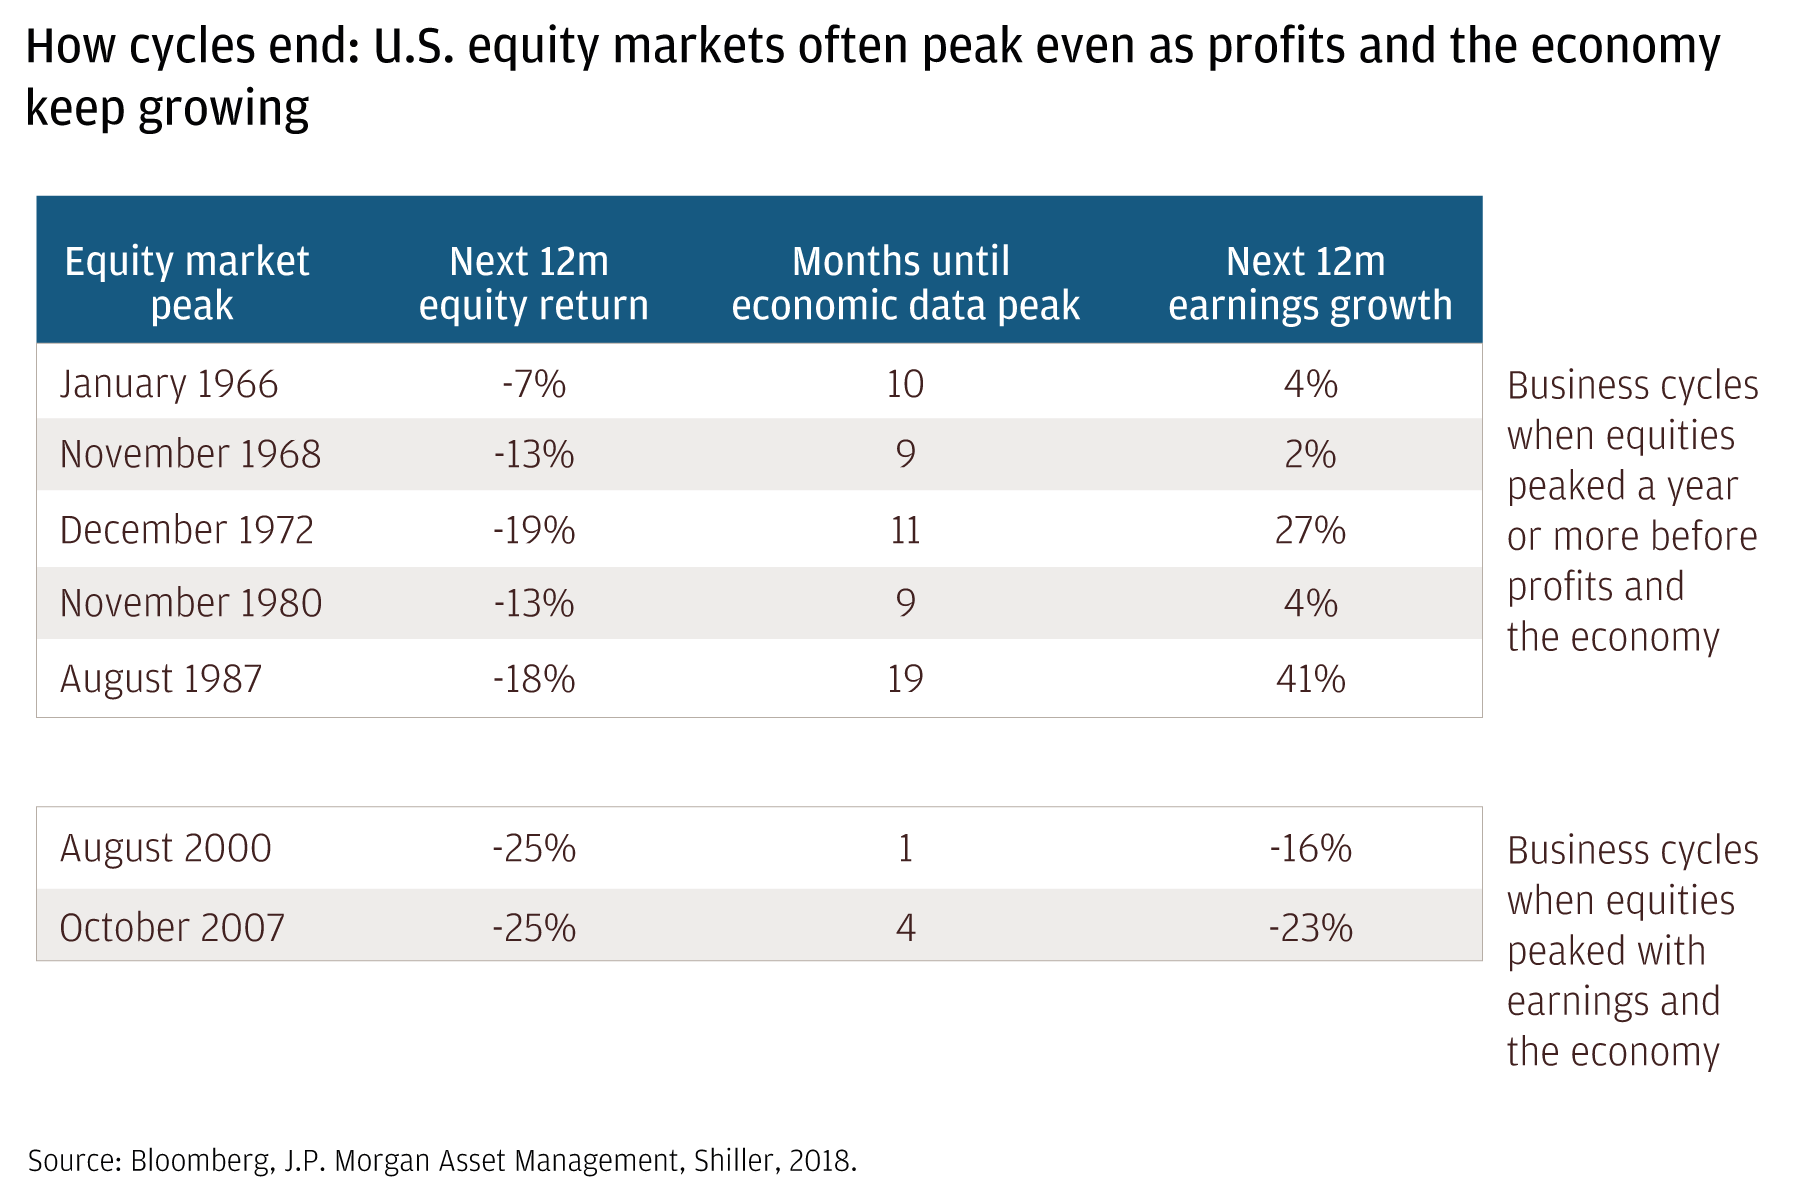 How cycles end: U.S. equity markets often peak even as profits and the economy keep growing